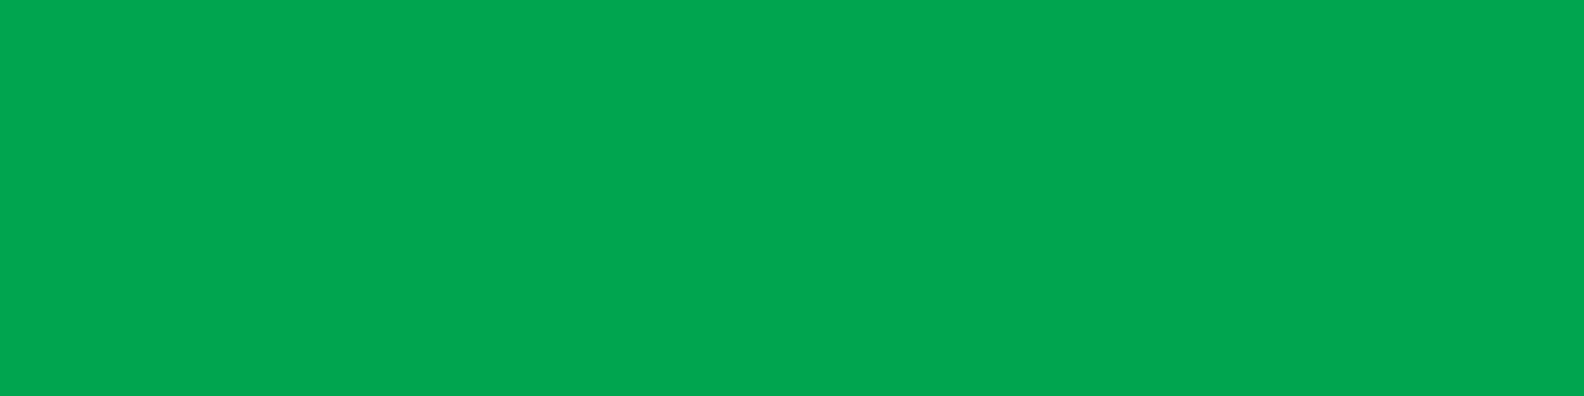 1584x396 Green Pigment Solid Color Background